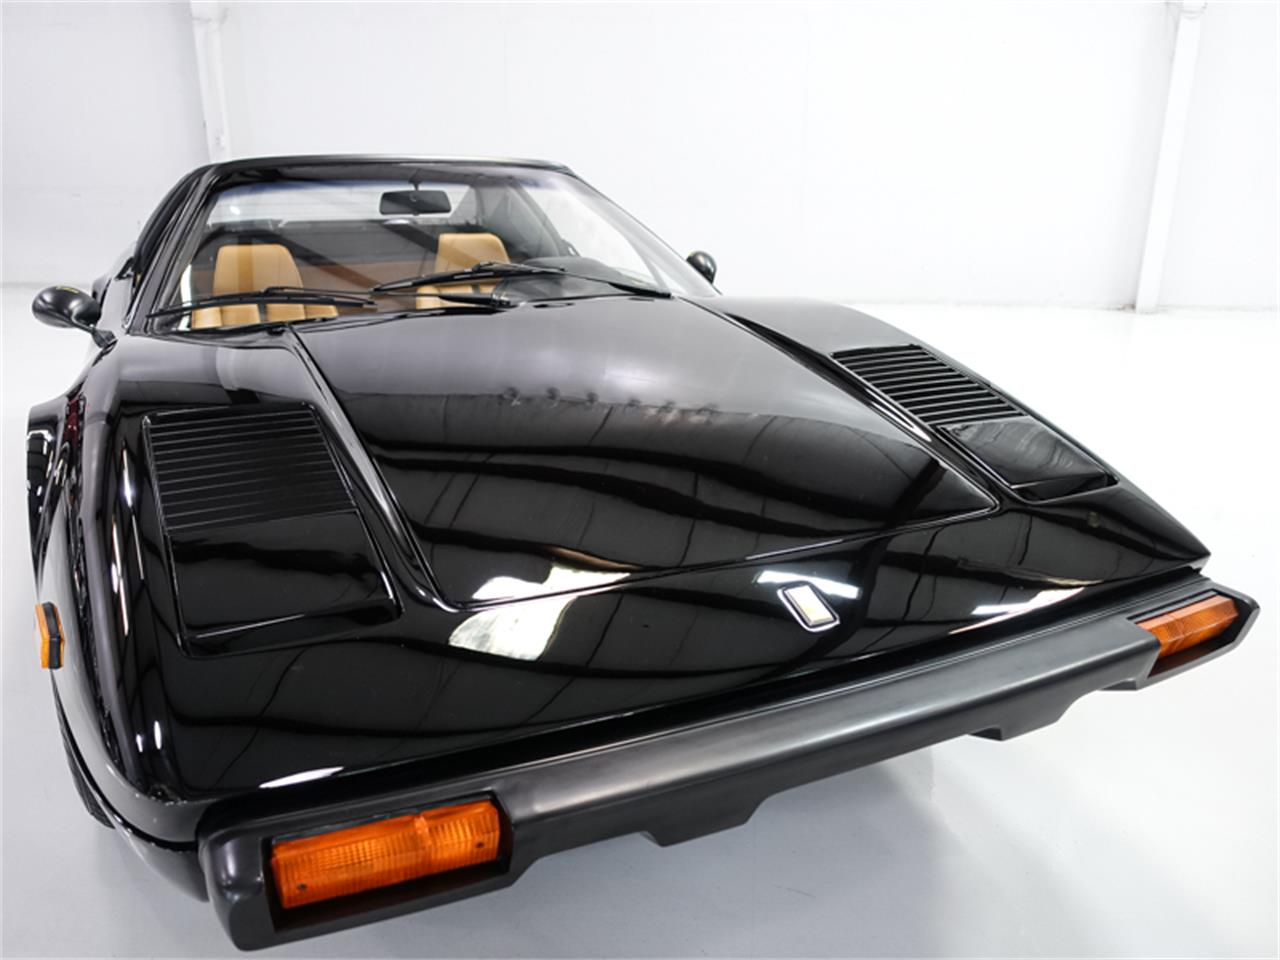 1978 Ferrari 308 GTS (CC-1097949) for sale in St. Louis, Missouri